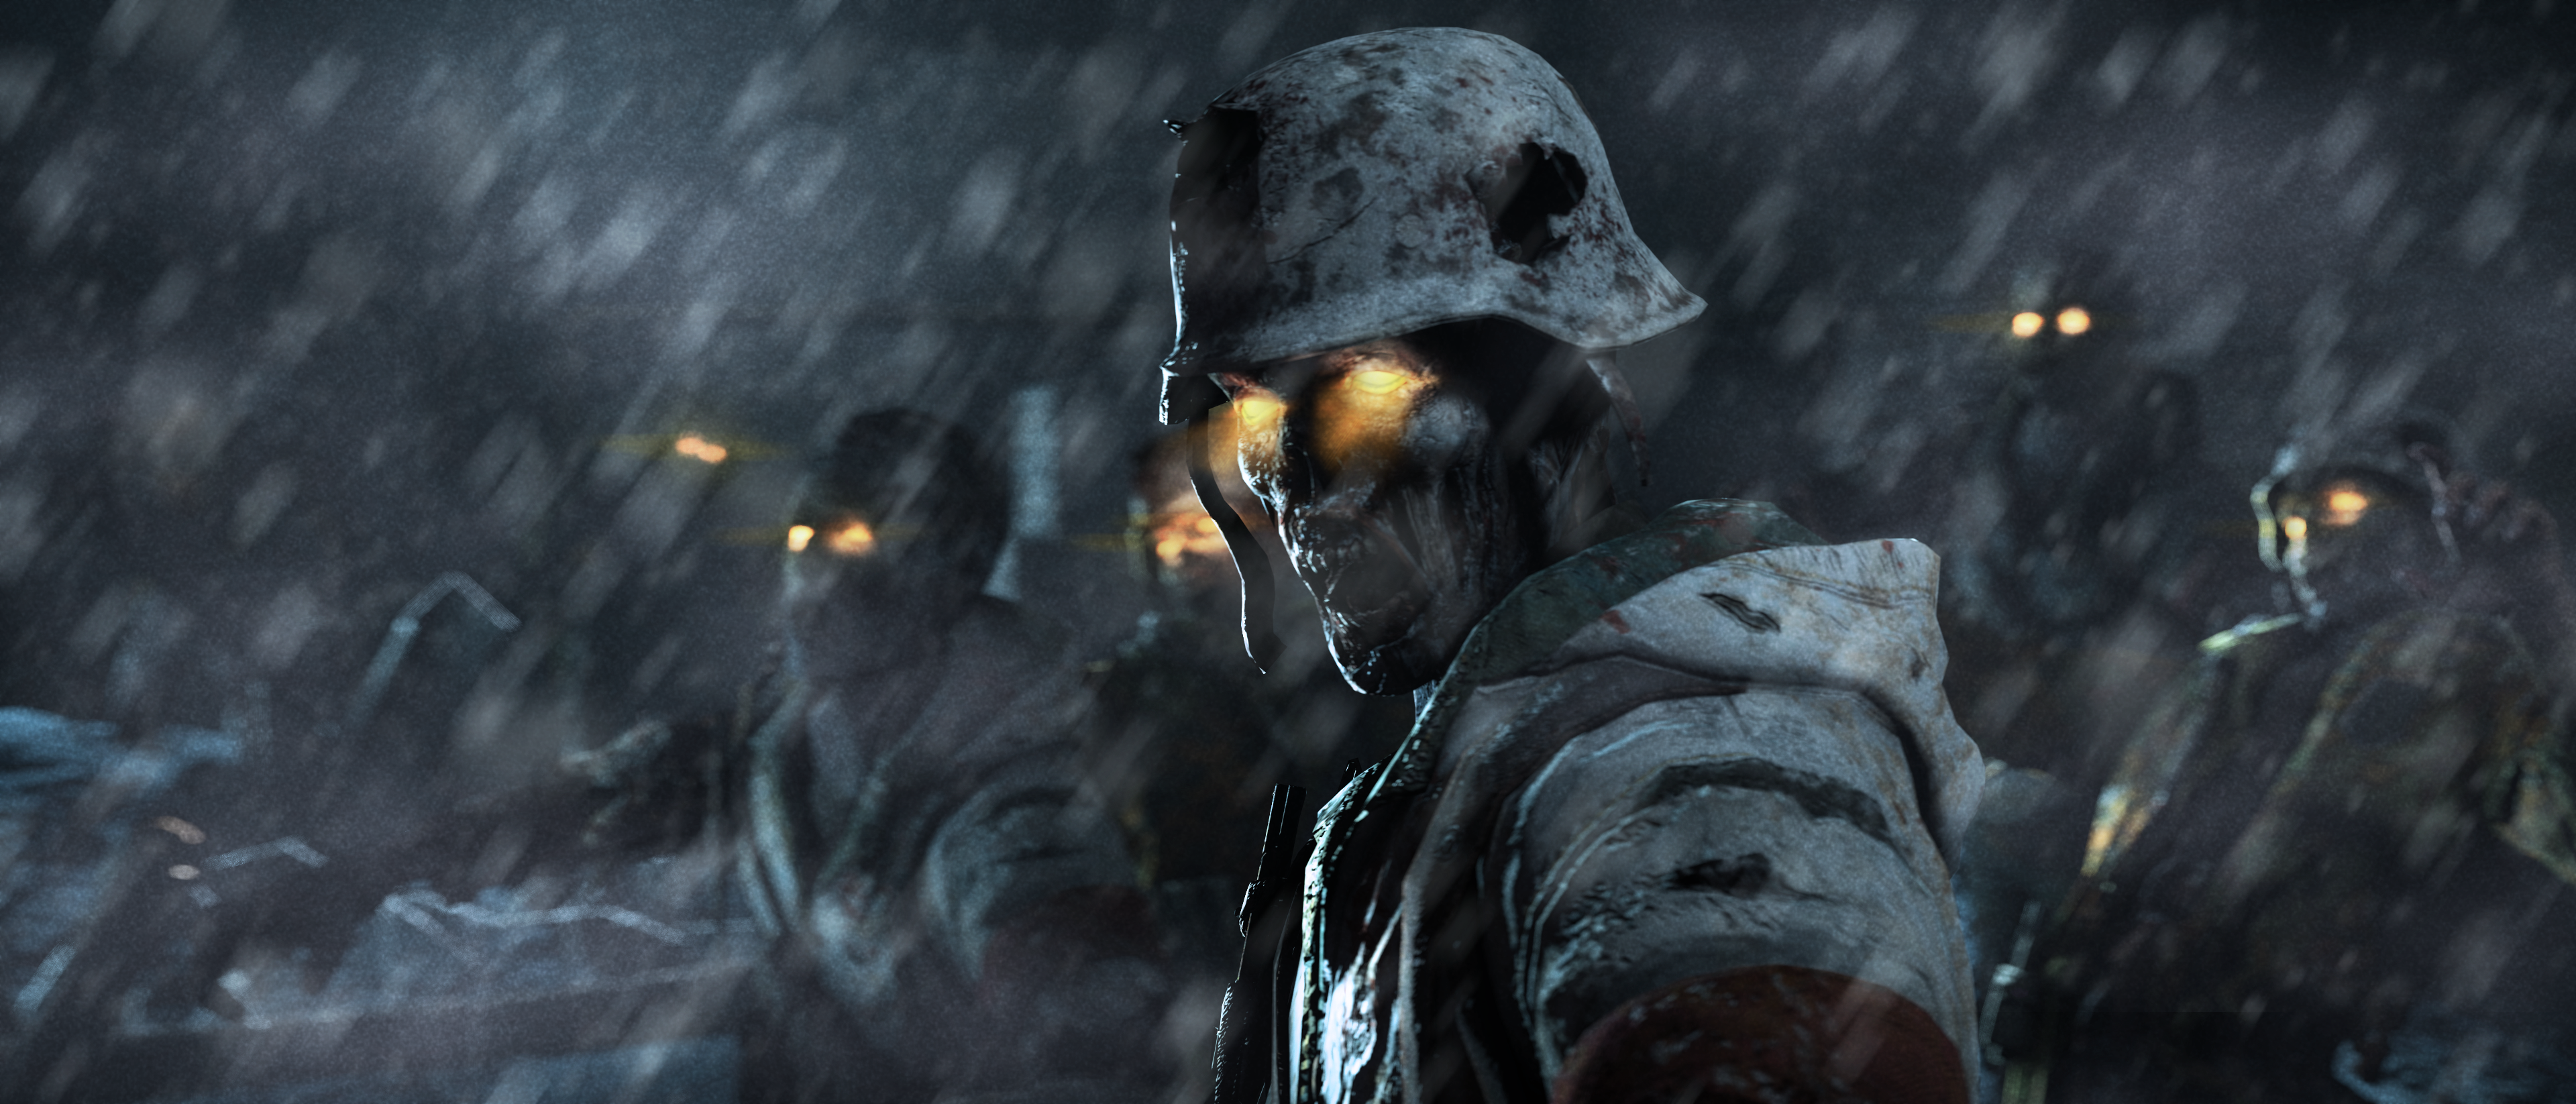 Call Of Duty Ww2 Zombies Wallpaper: Zombies Favourites By Ryman8989 On DeviantArt